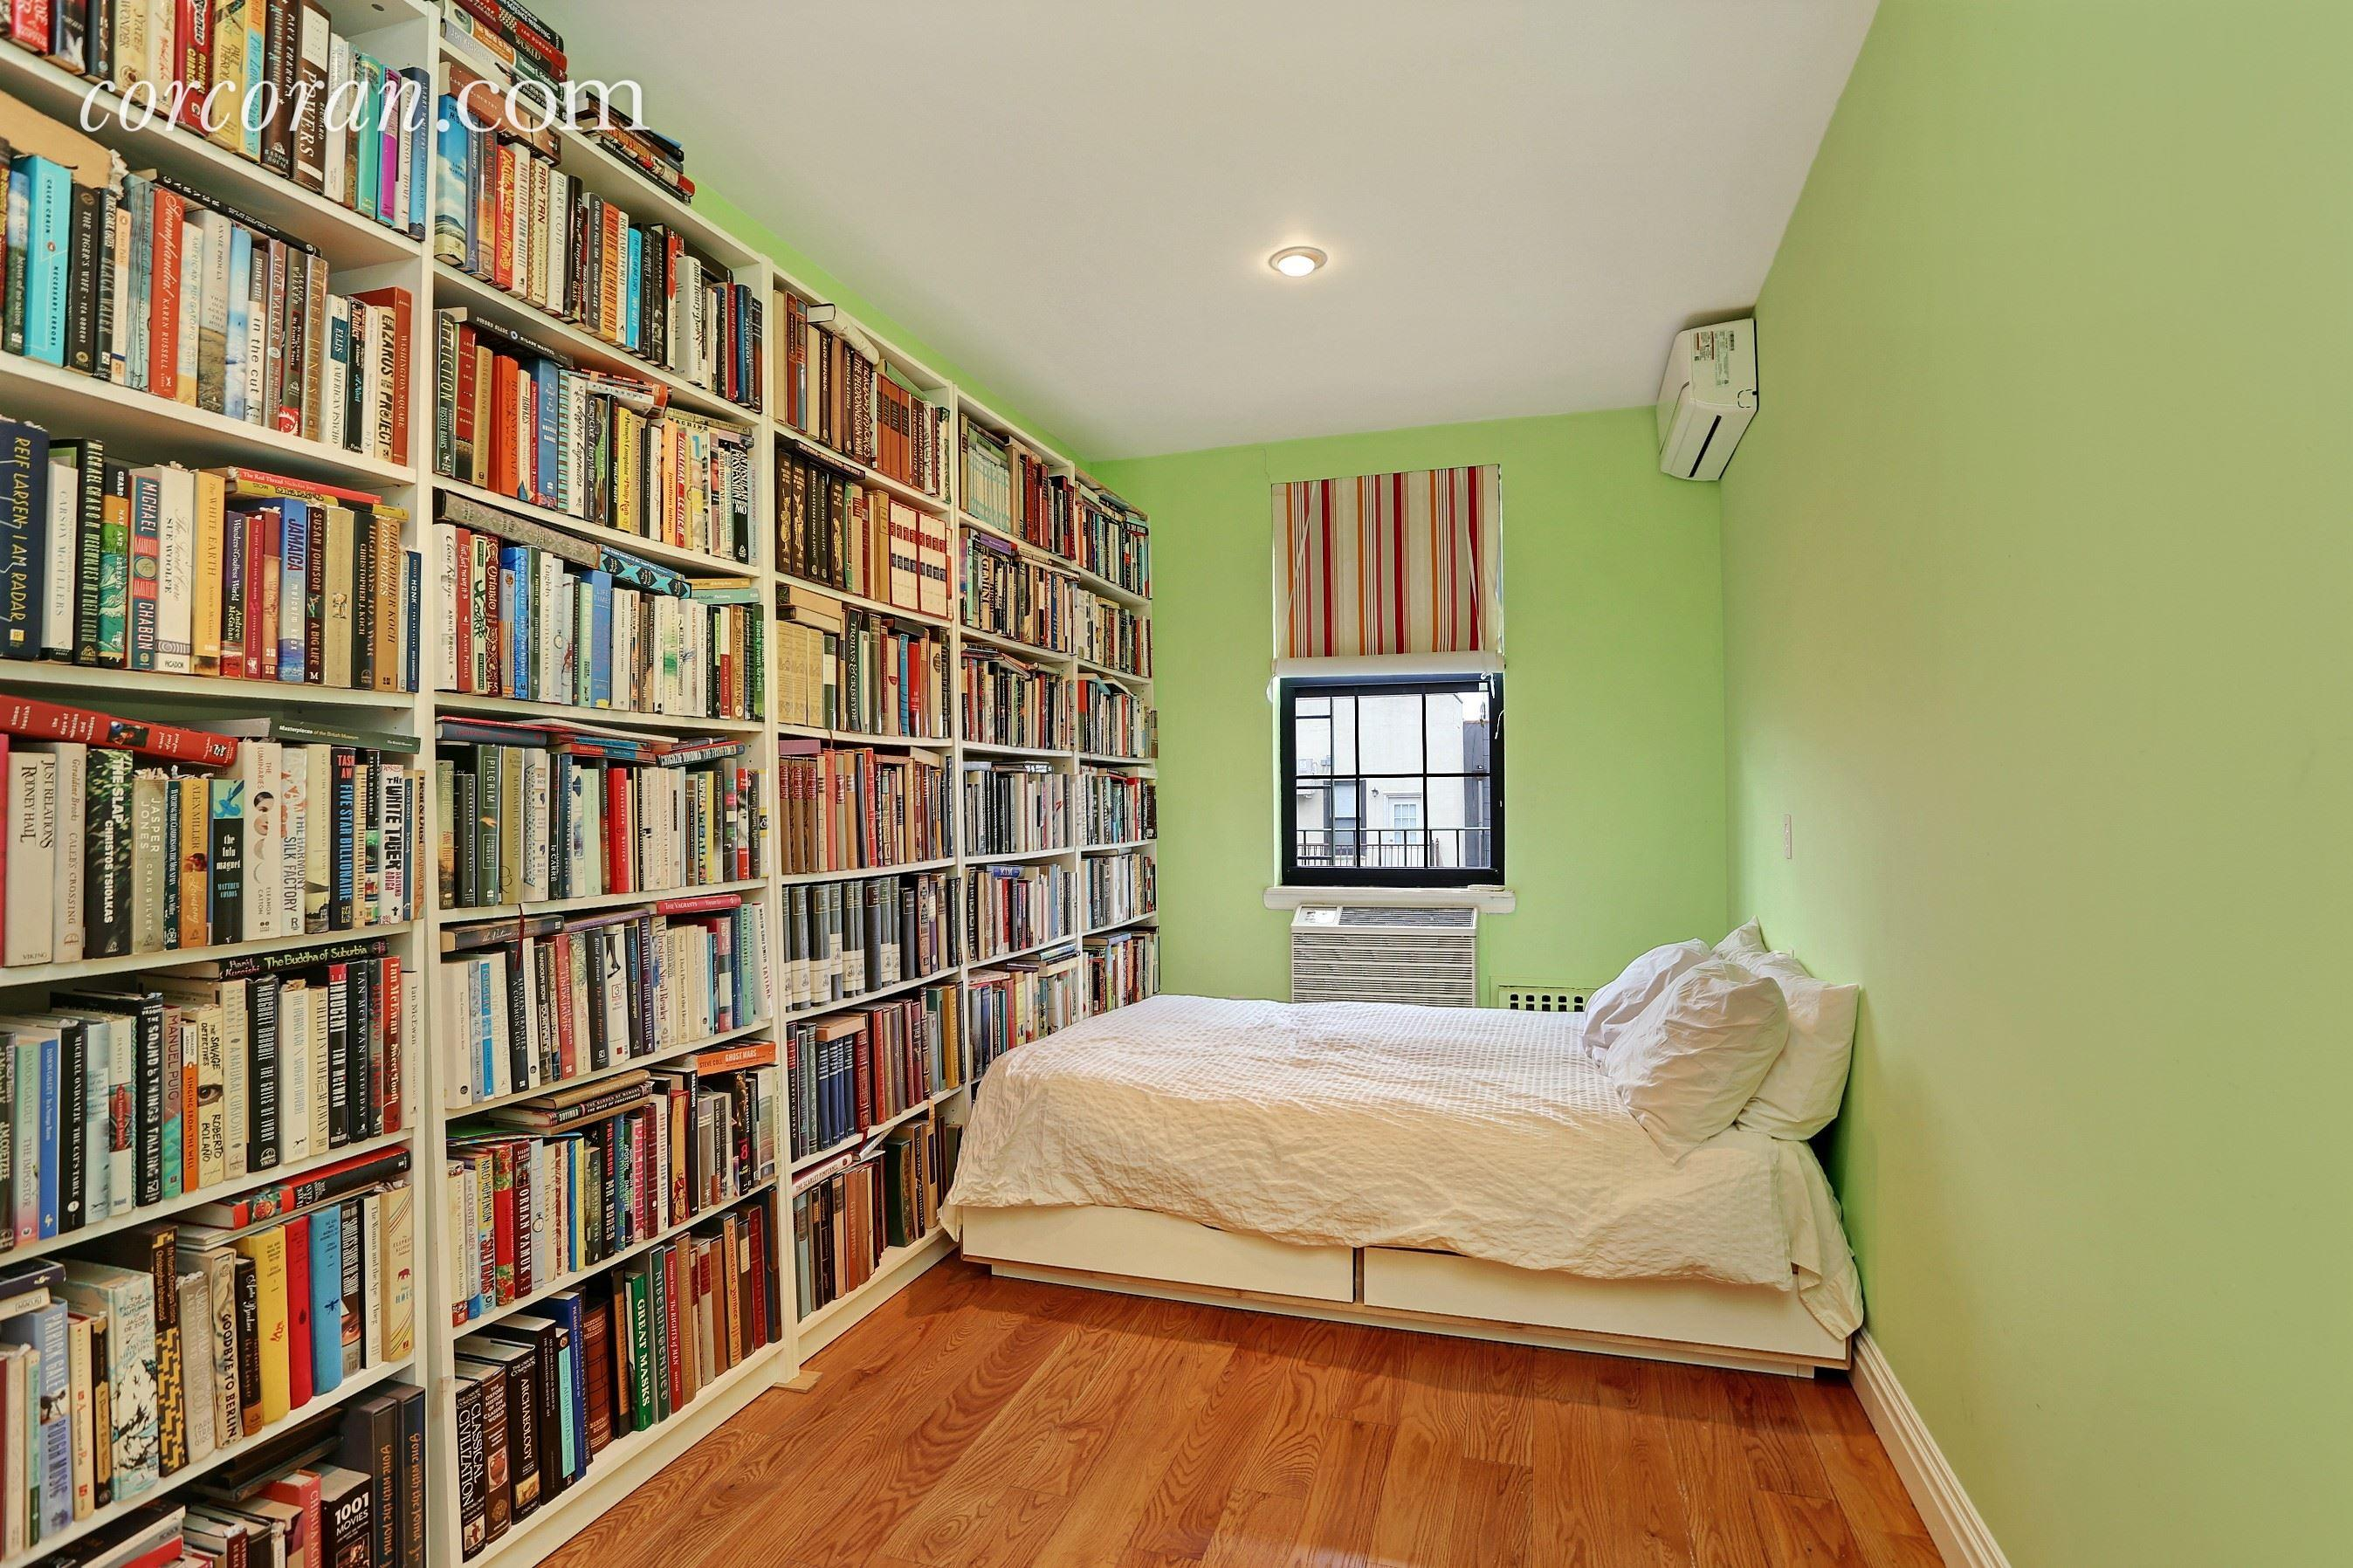 118 St. Marks Place, second bedroom, duplex, rental, park slope